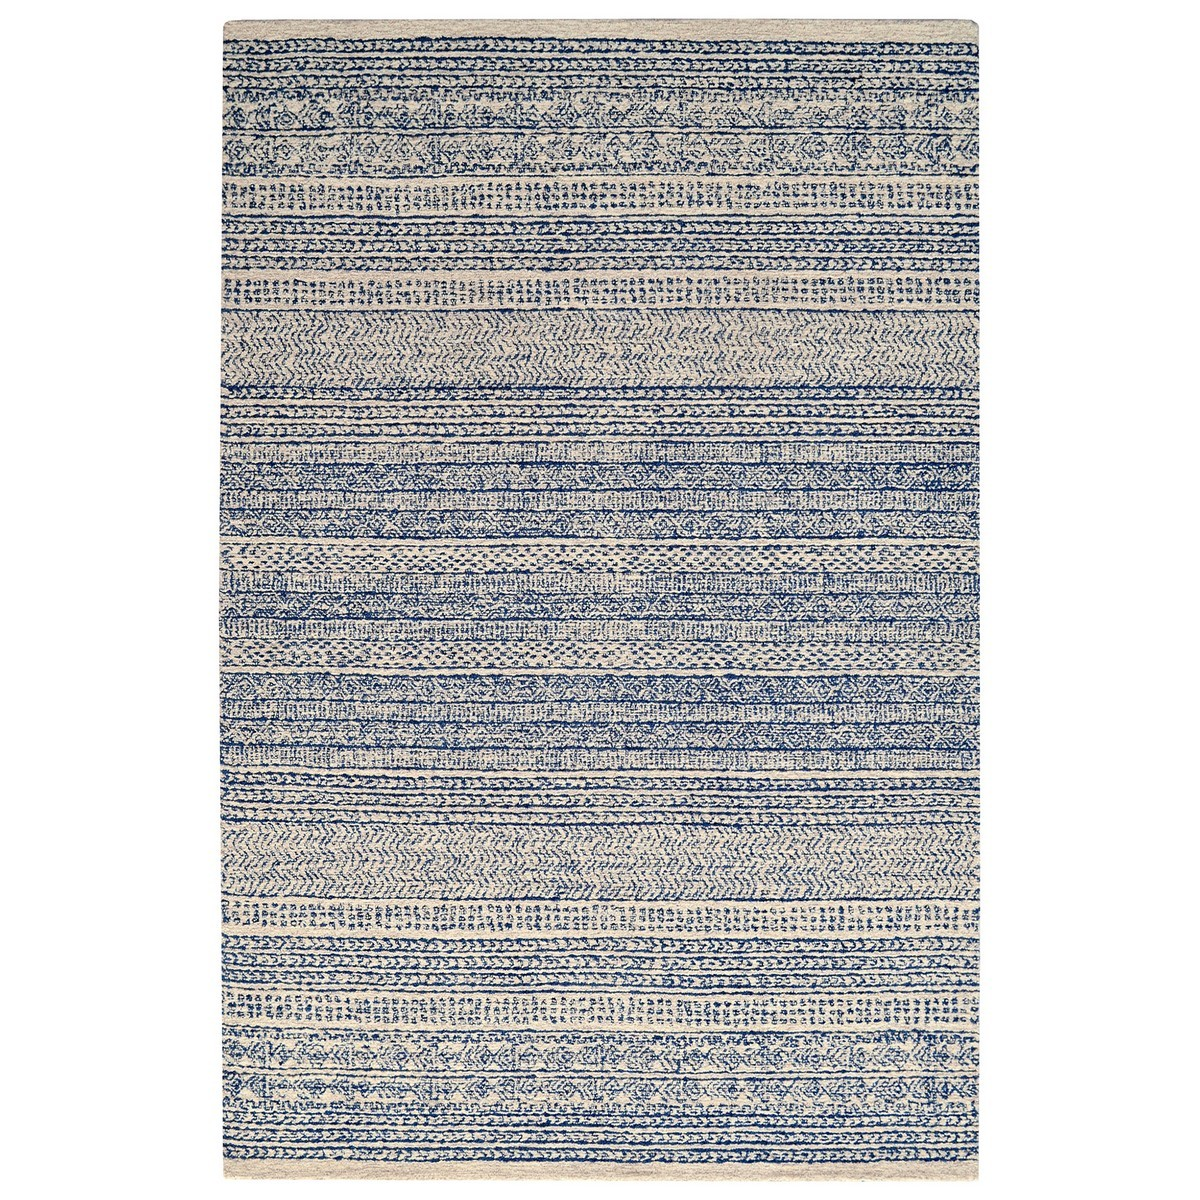 Newcastle No.6201 Handmade Wool Rug, 280x190cm